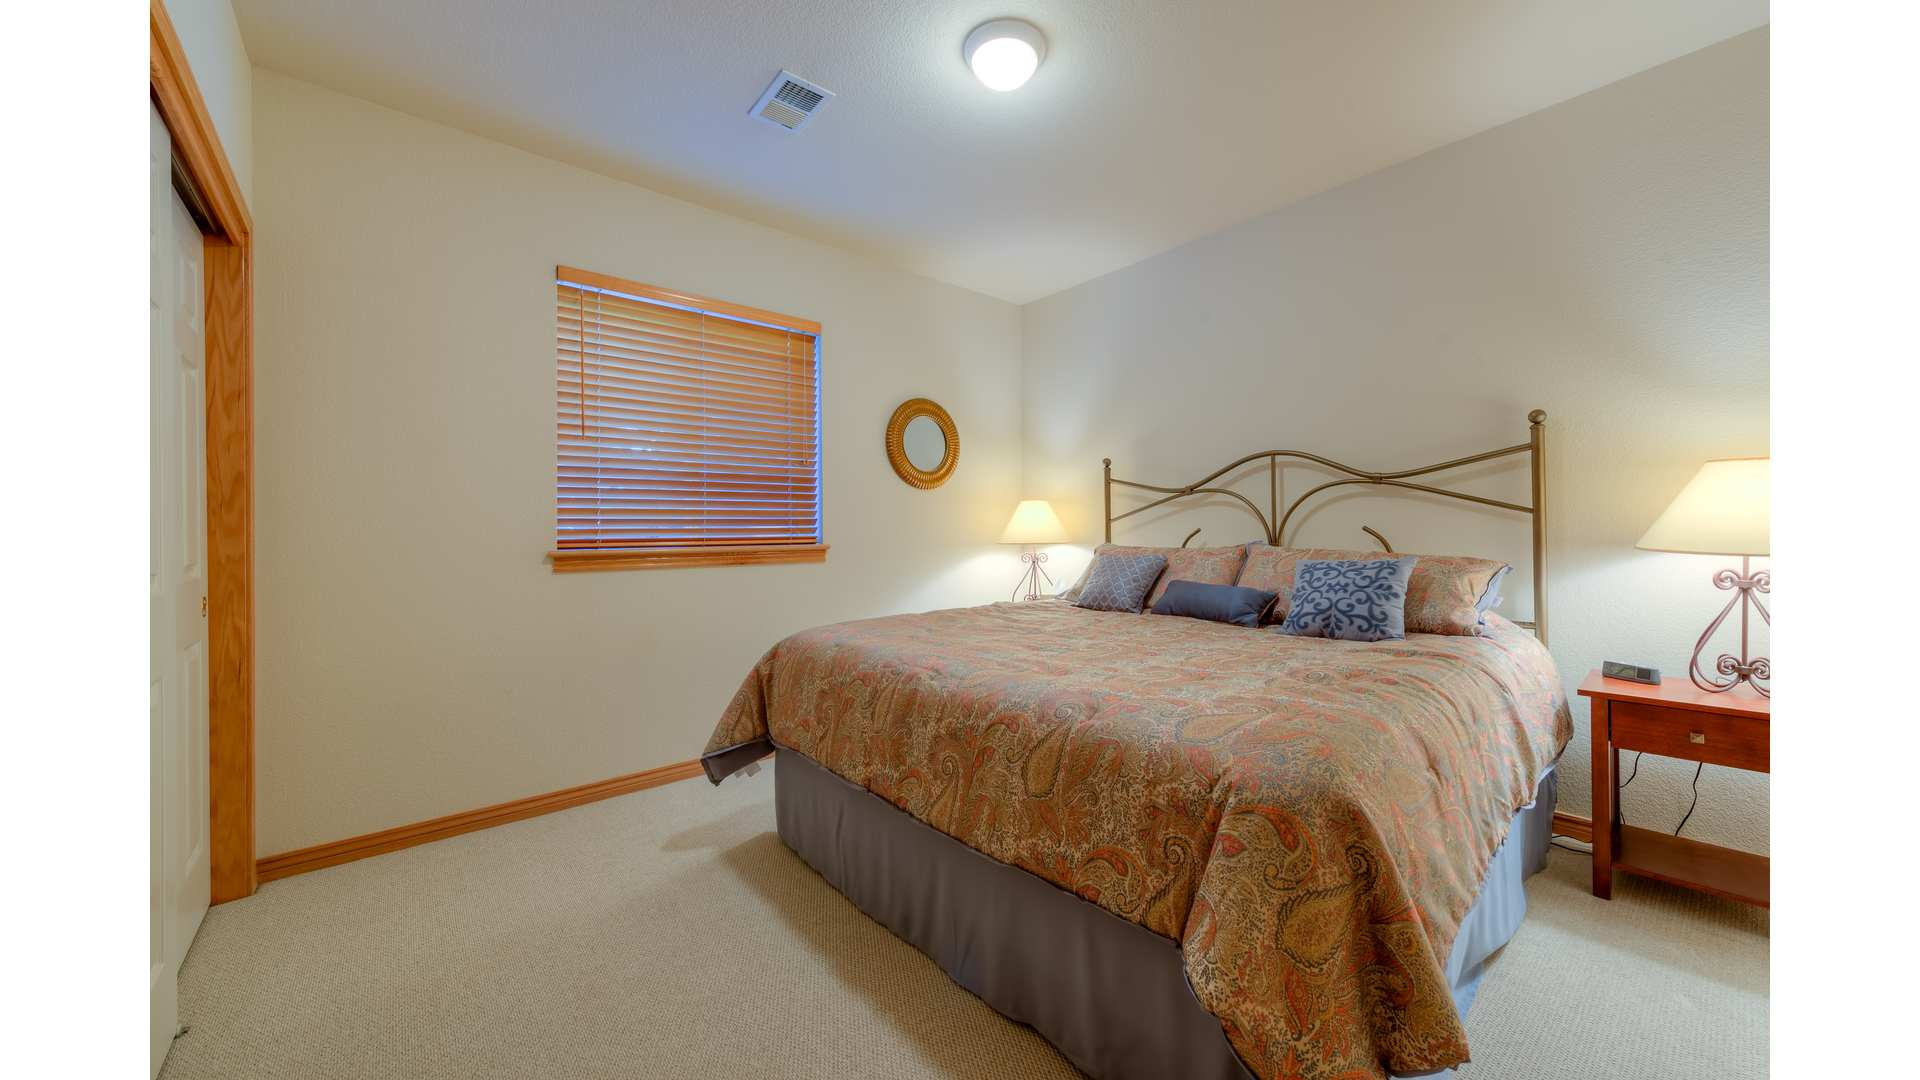 24 1995 LL Bedroom4 5TMDE Default RVT2 NR 1920 - Real Estate Photos